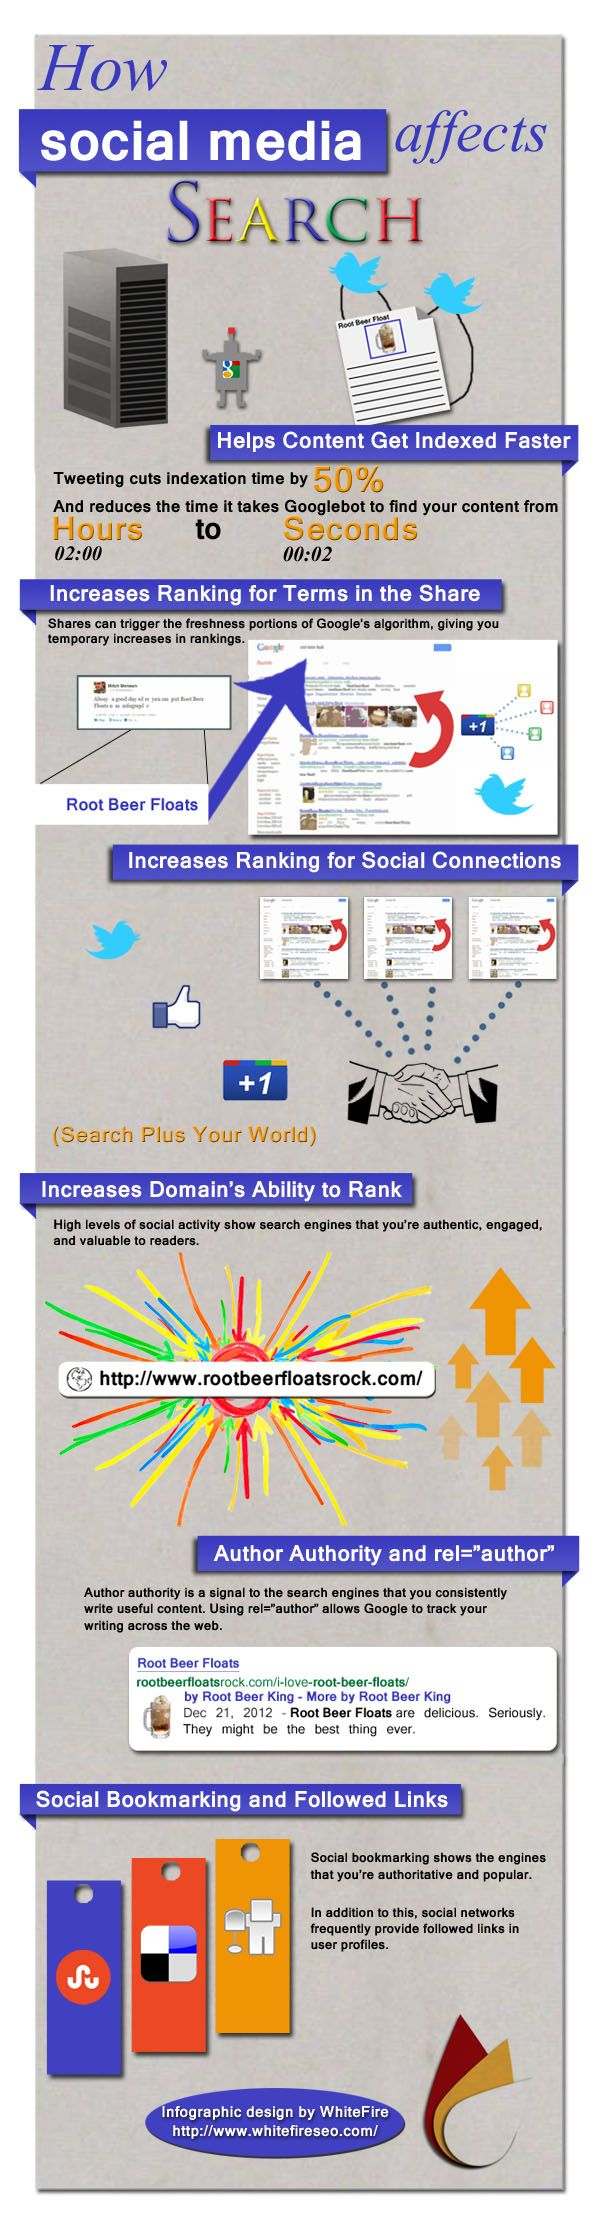 How social media impacts SEO    http://socialmediatoday.com/brianna5mith/1284881/how-social-media-impacts-seo-infographic?utm_source=feedburner_medium=feed_campaign=Social+Media+Today+%28all+posts%29_content=FaceBook